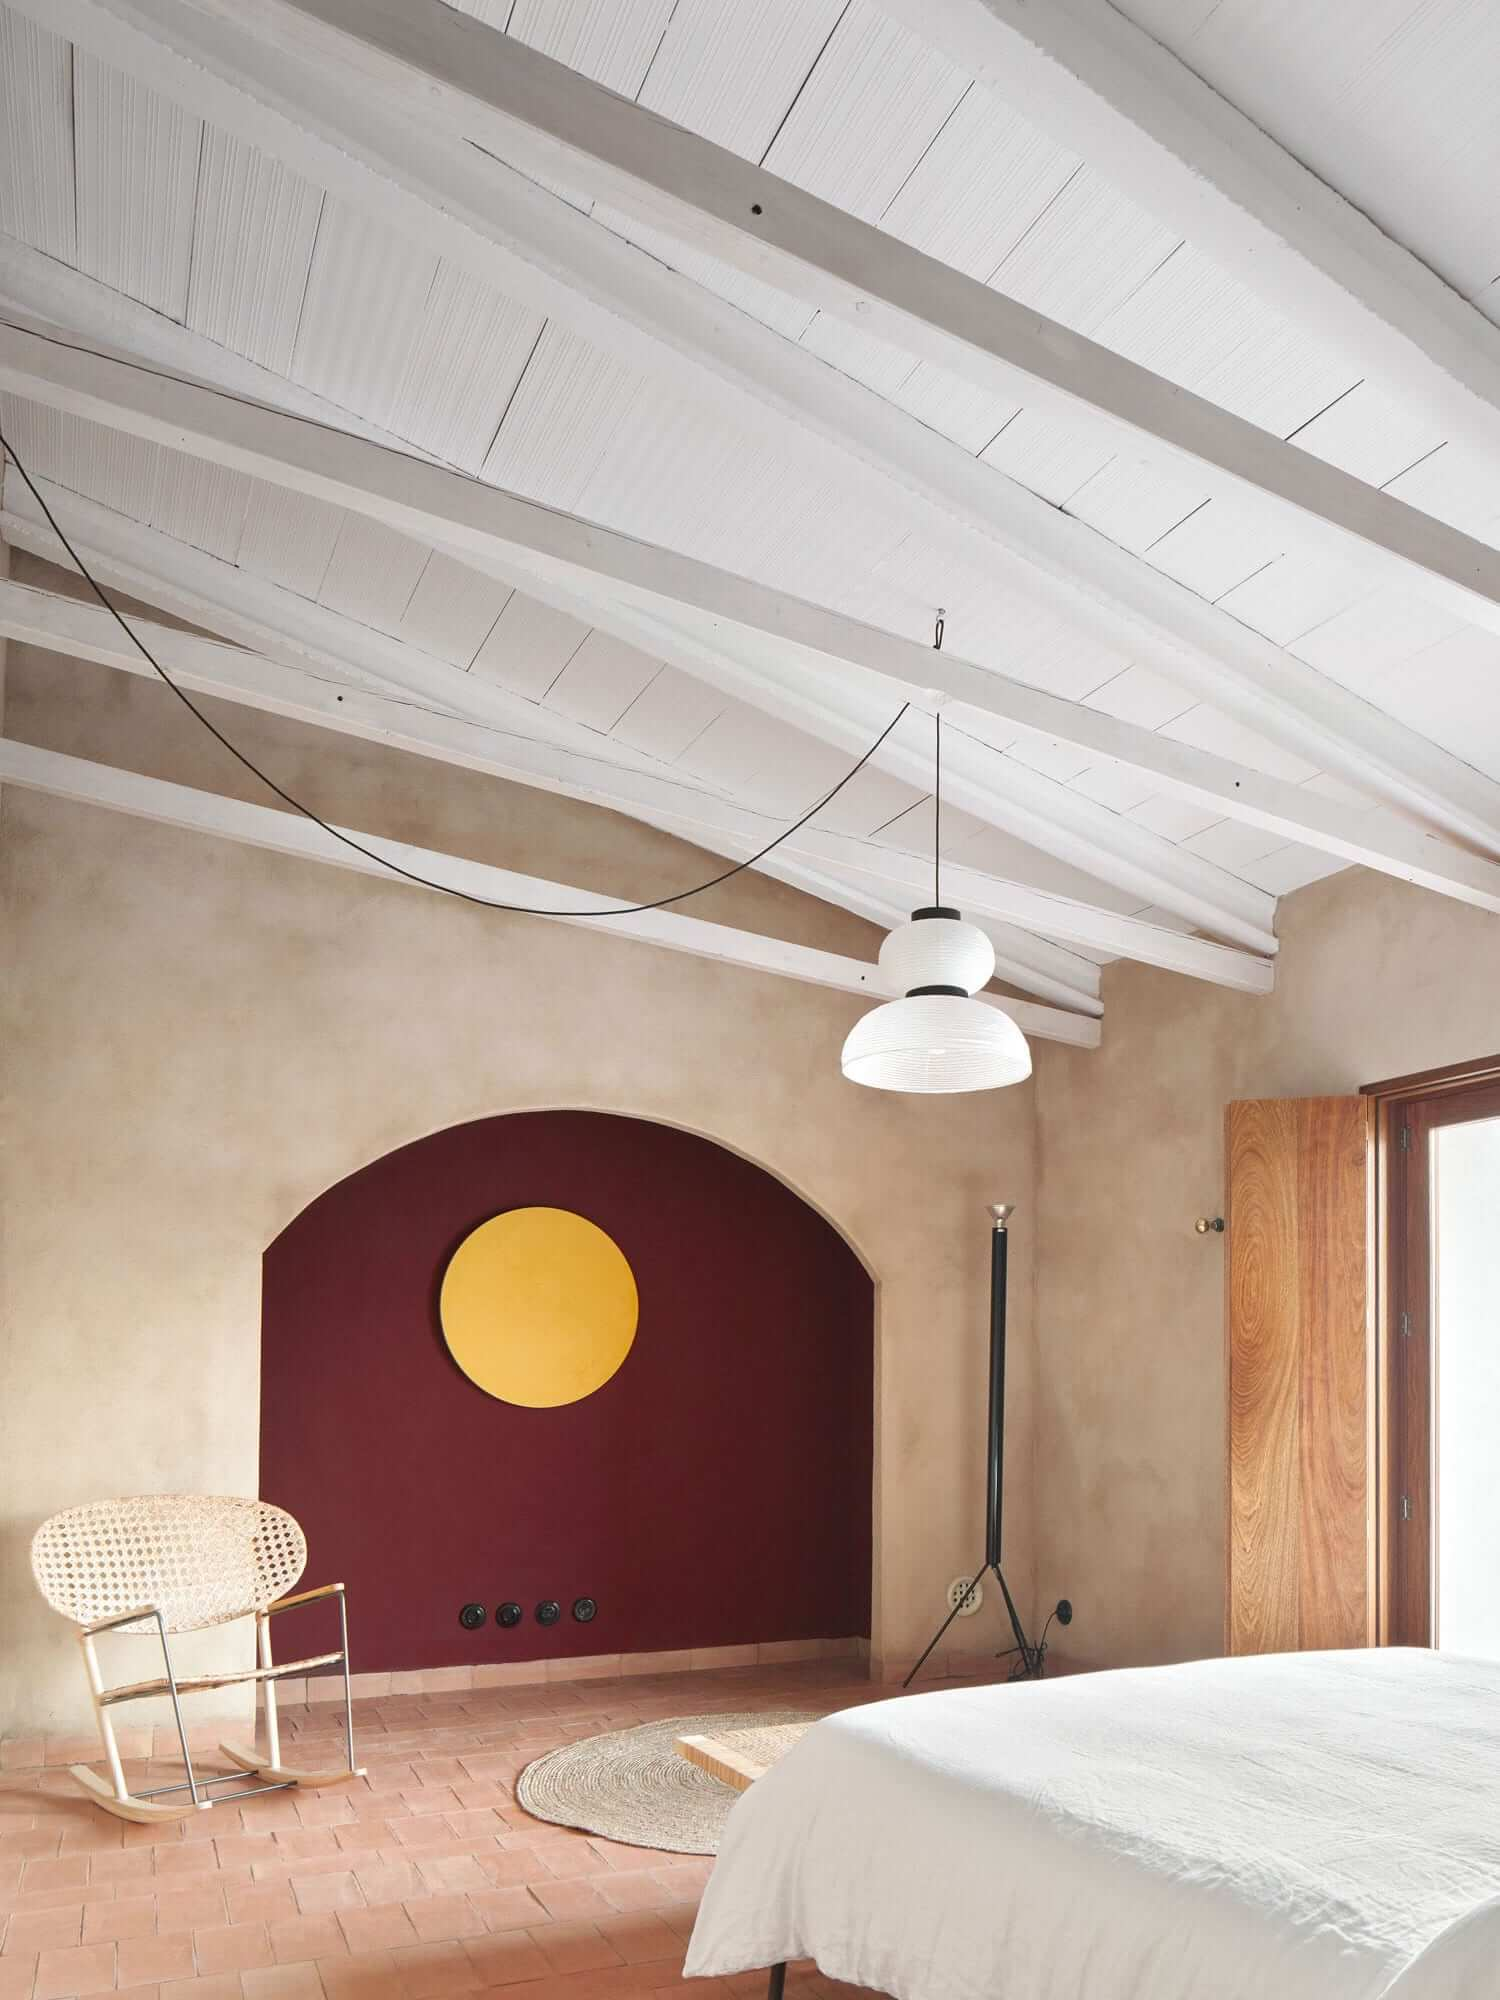 Rural Guesthouse by Lucas Y Hernandez Gil Est Collection: Rural Spanish Retreats est living